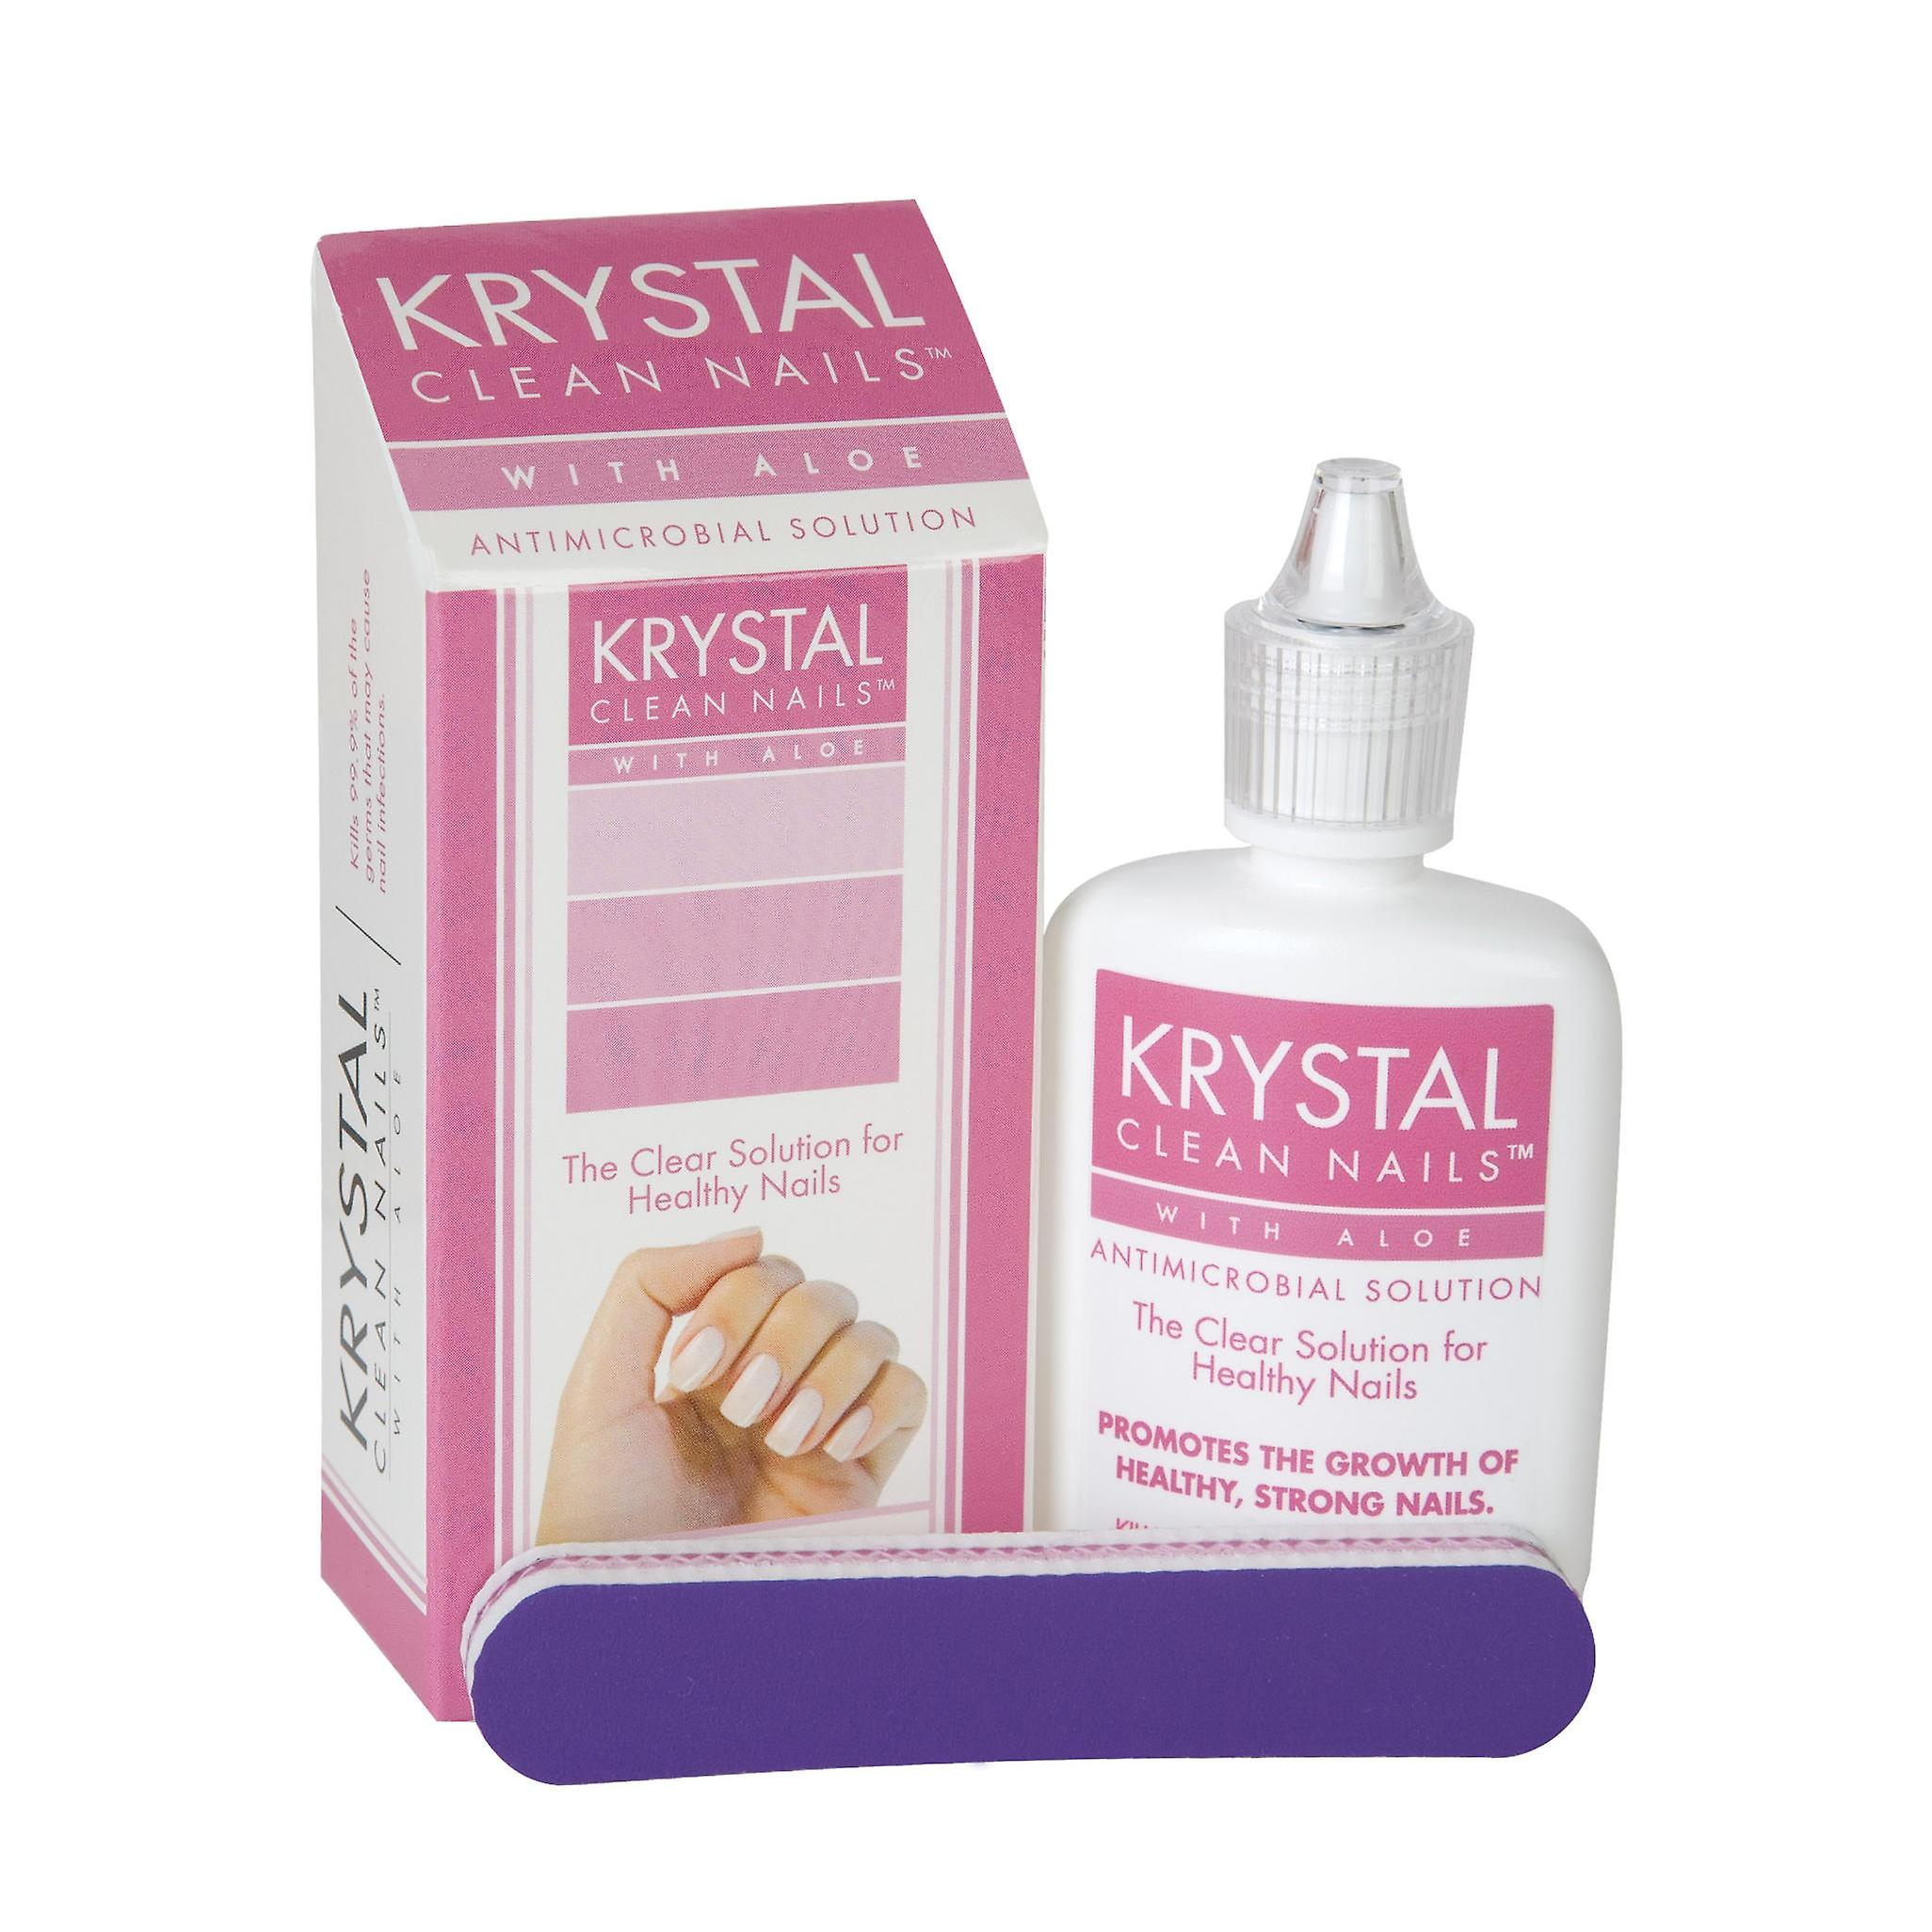 Krystal ren negler (29ml)